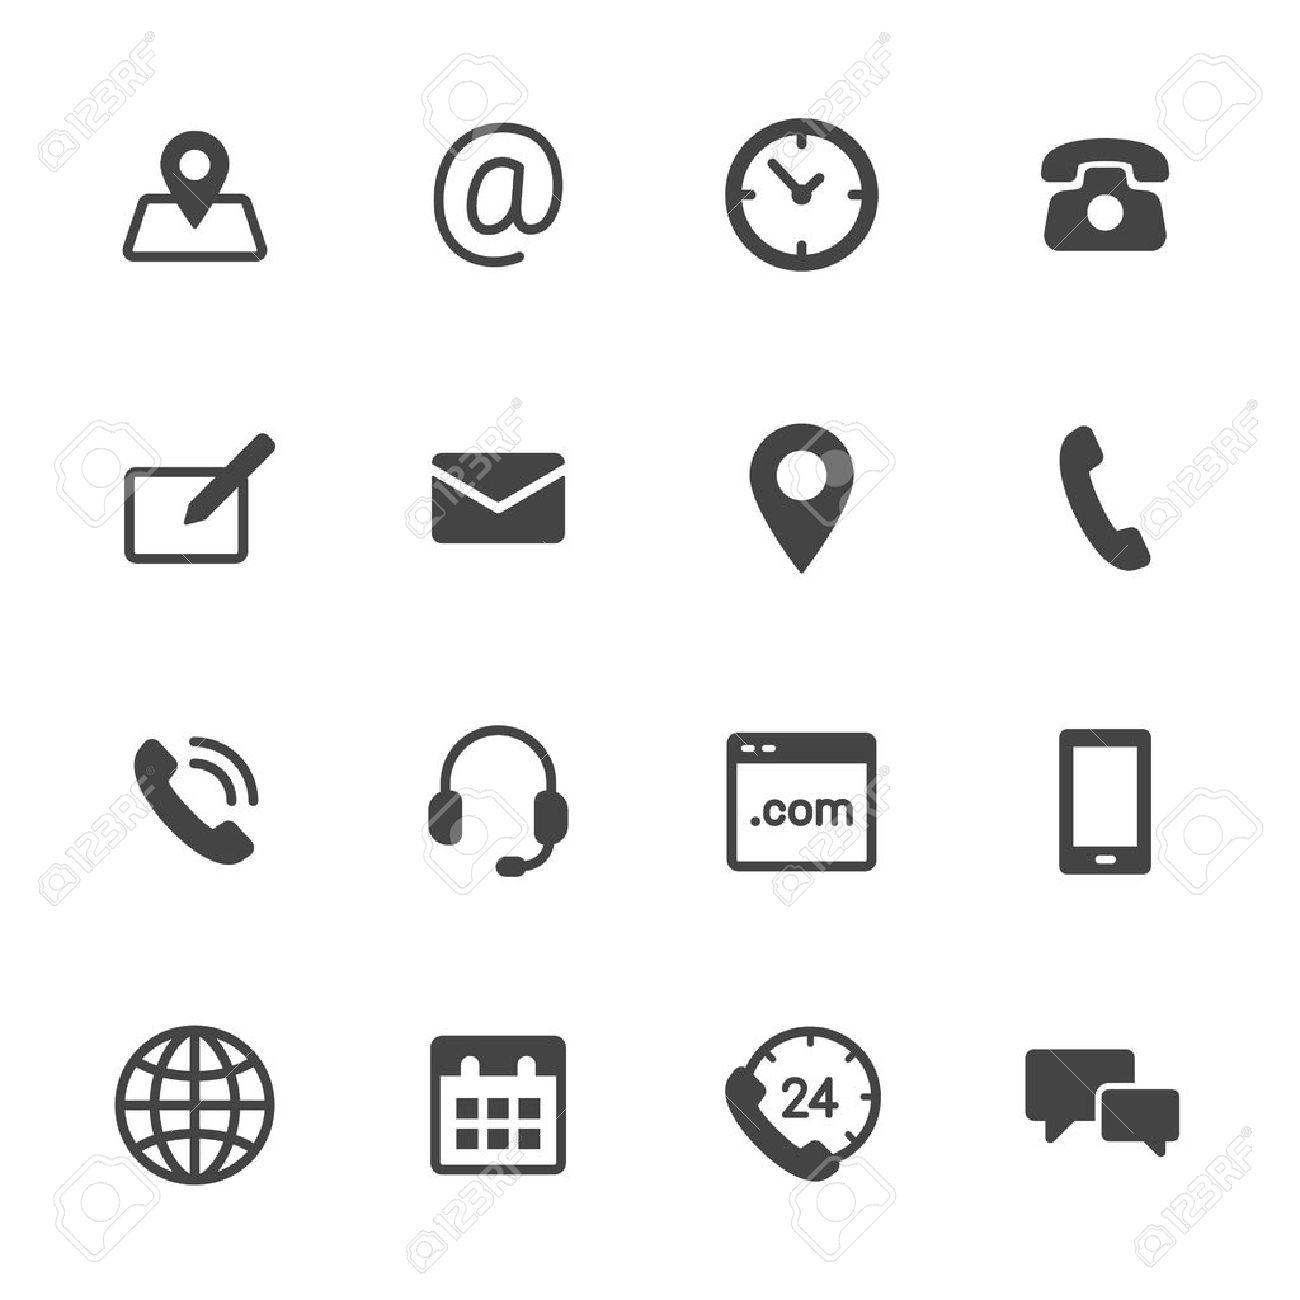 contact us icons simple flat vector icons set on white background rh 123rf com vector icons free vector icons powerpoint